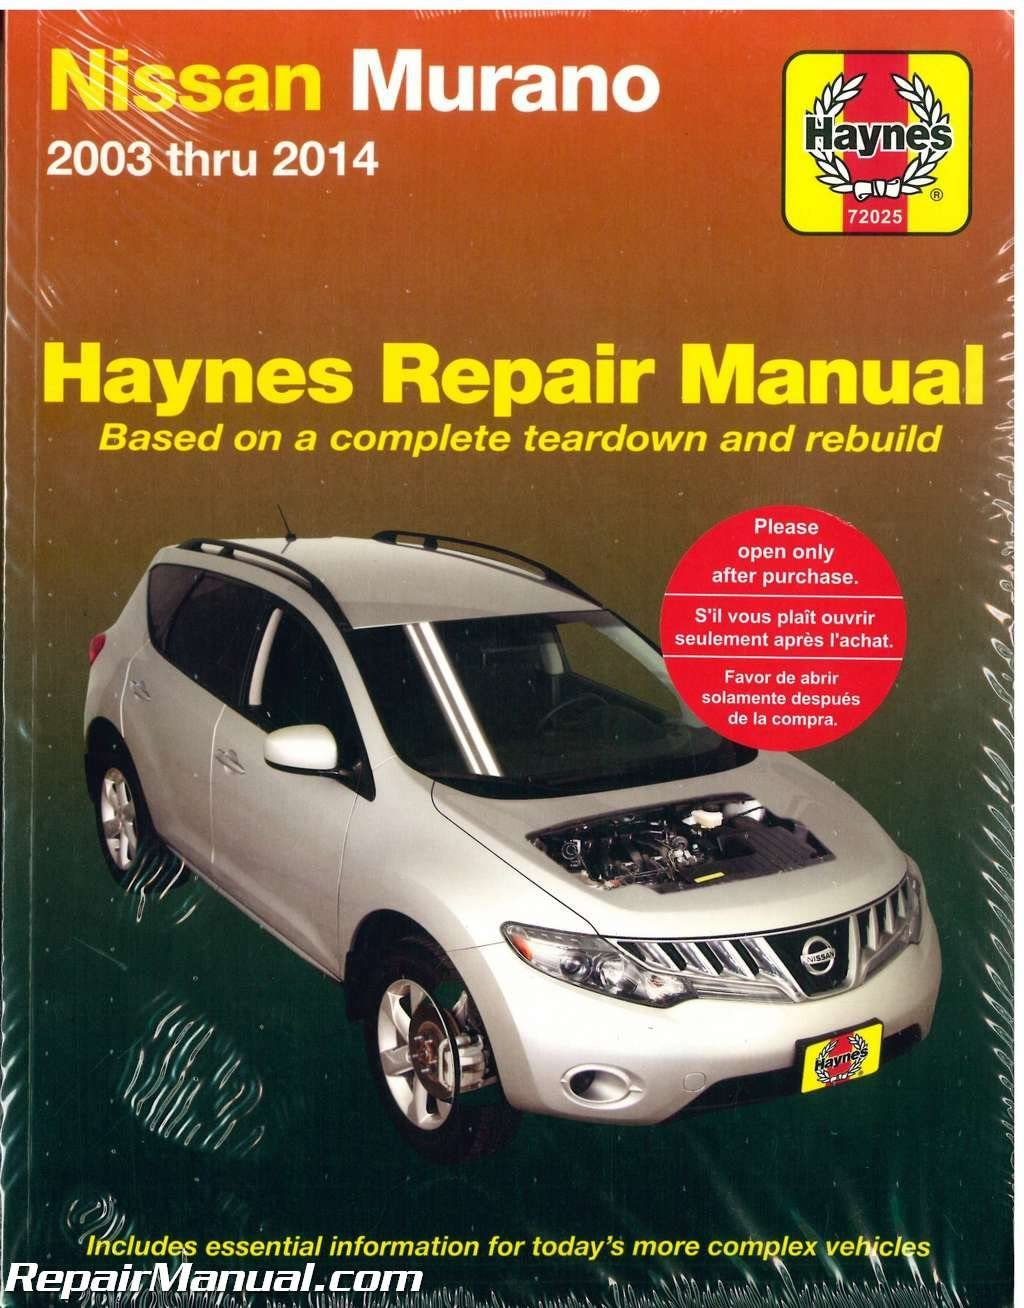 Haynes Repair Service Manual H72025 for Nissan Murano 2003-2014